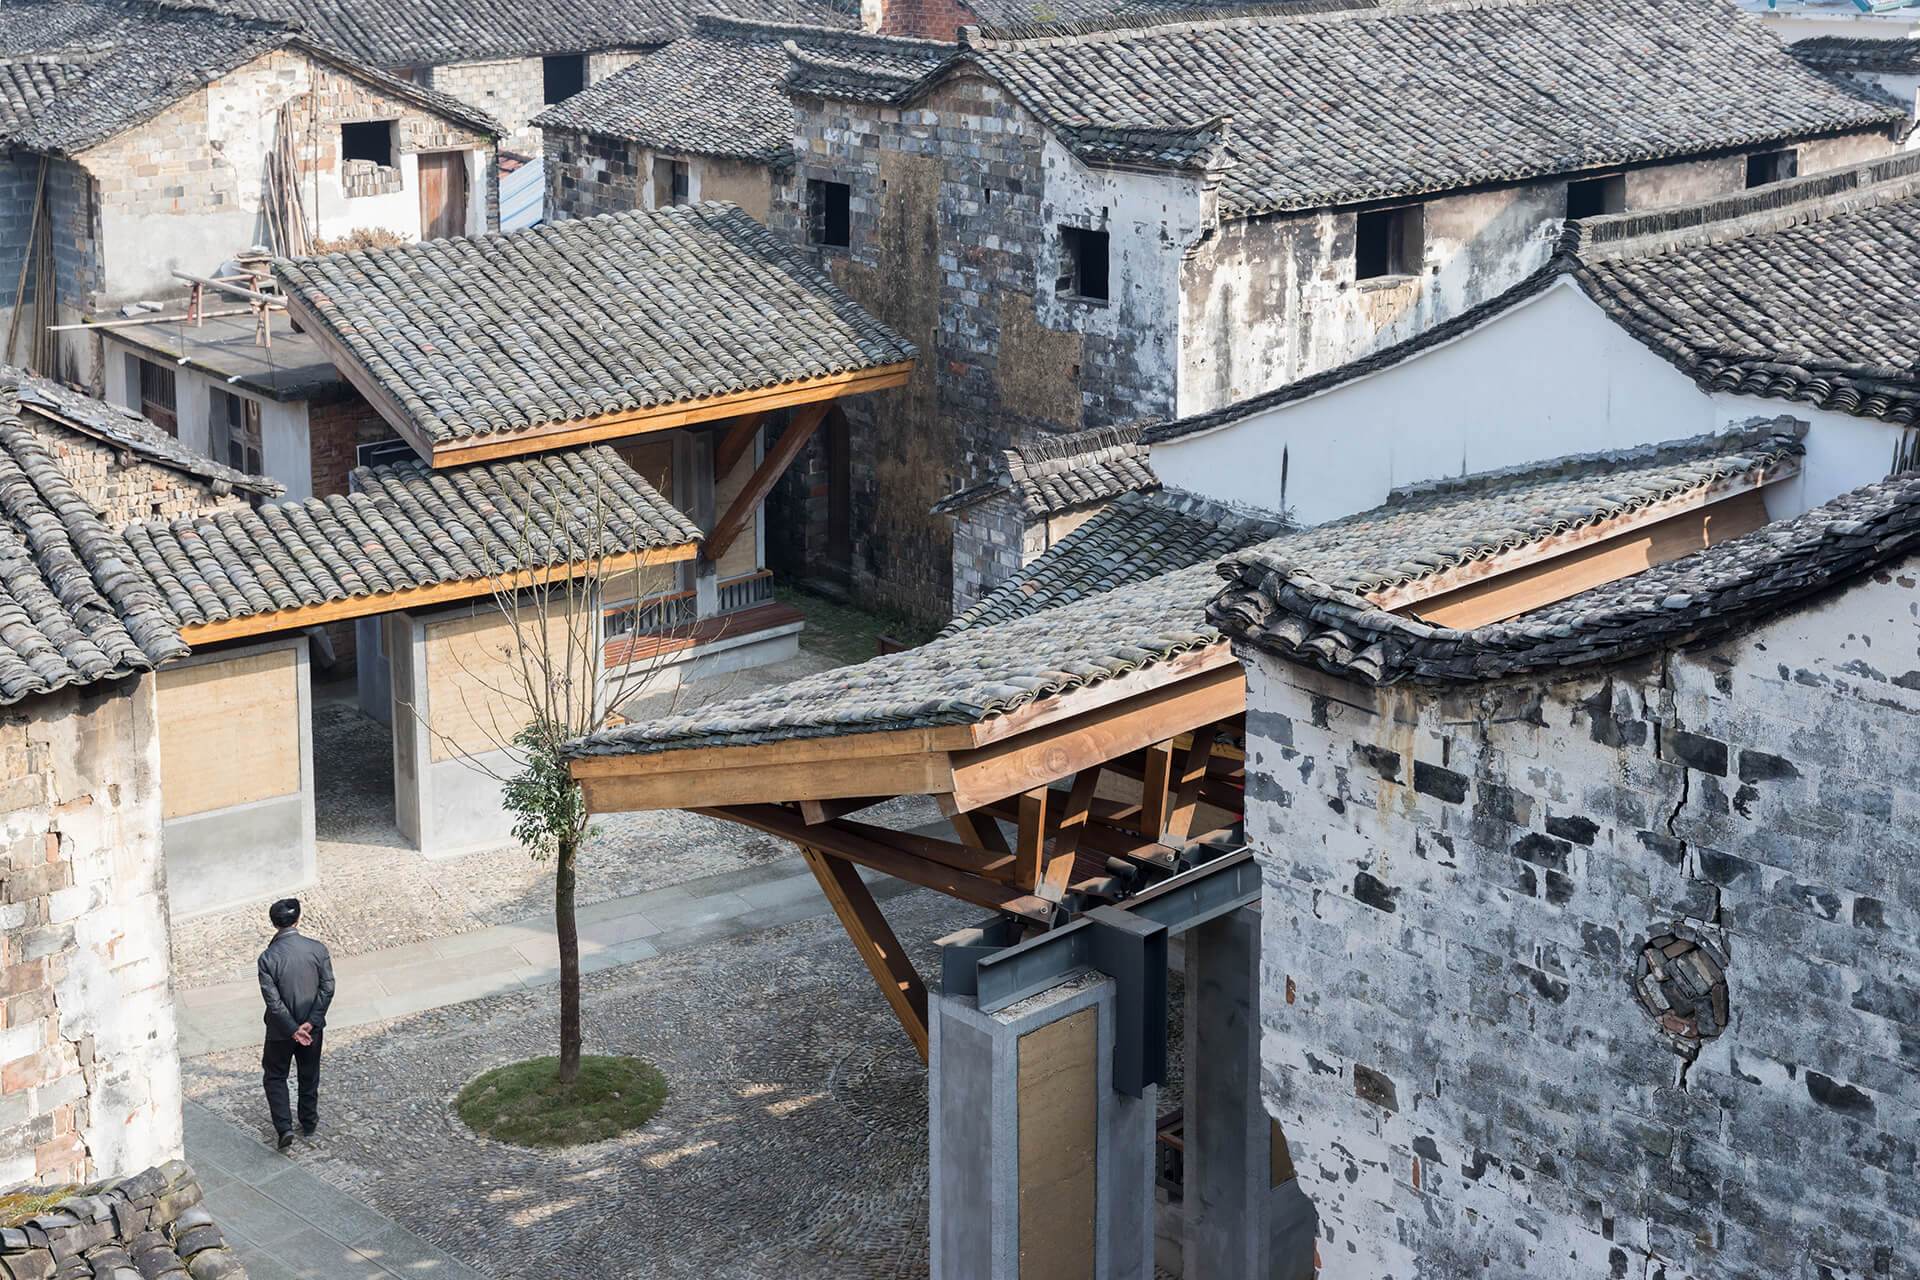 Wencun Village, Zhejiang province, 2012-16 | Vladimir Belogolovsky in conversation with architect WANG Shu | STIRworld